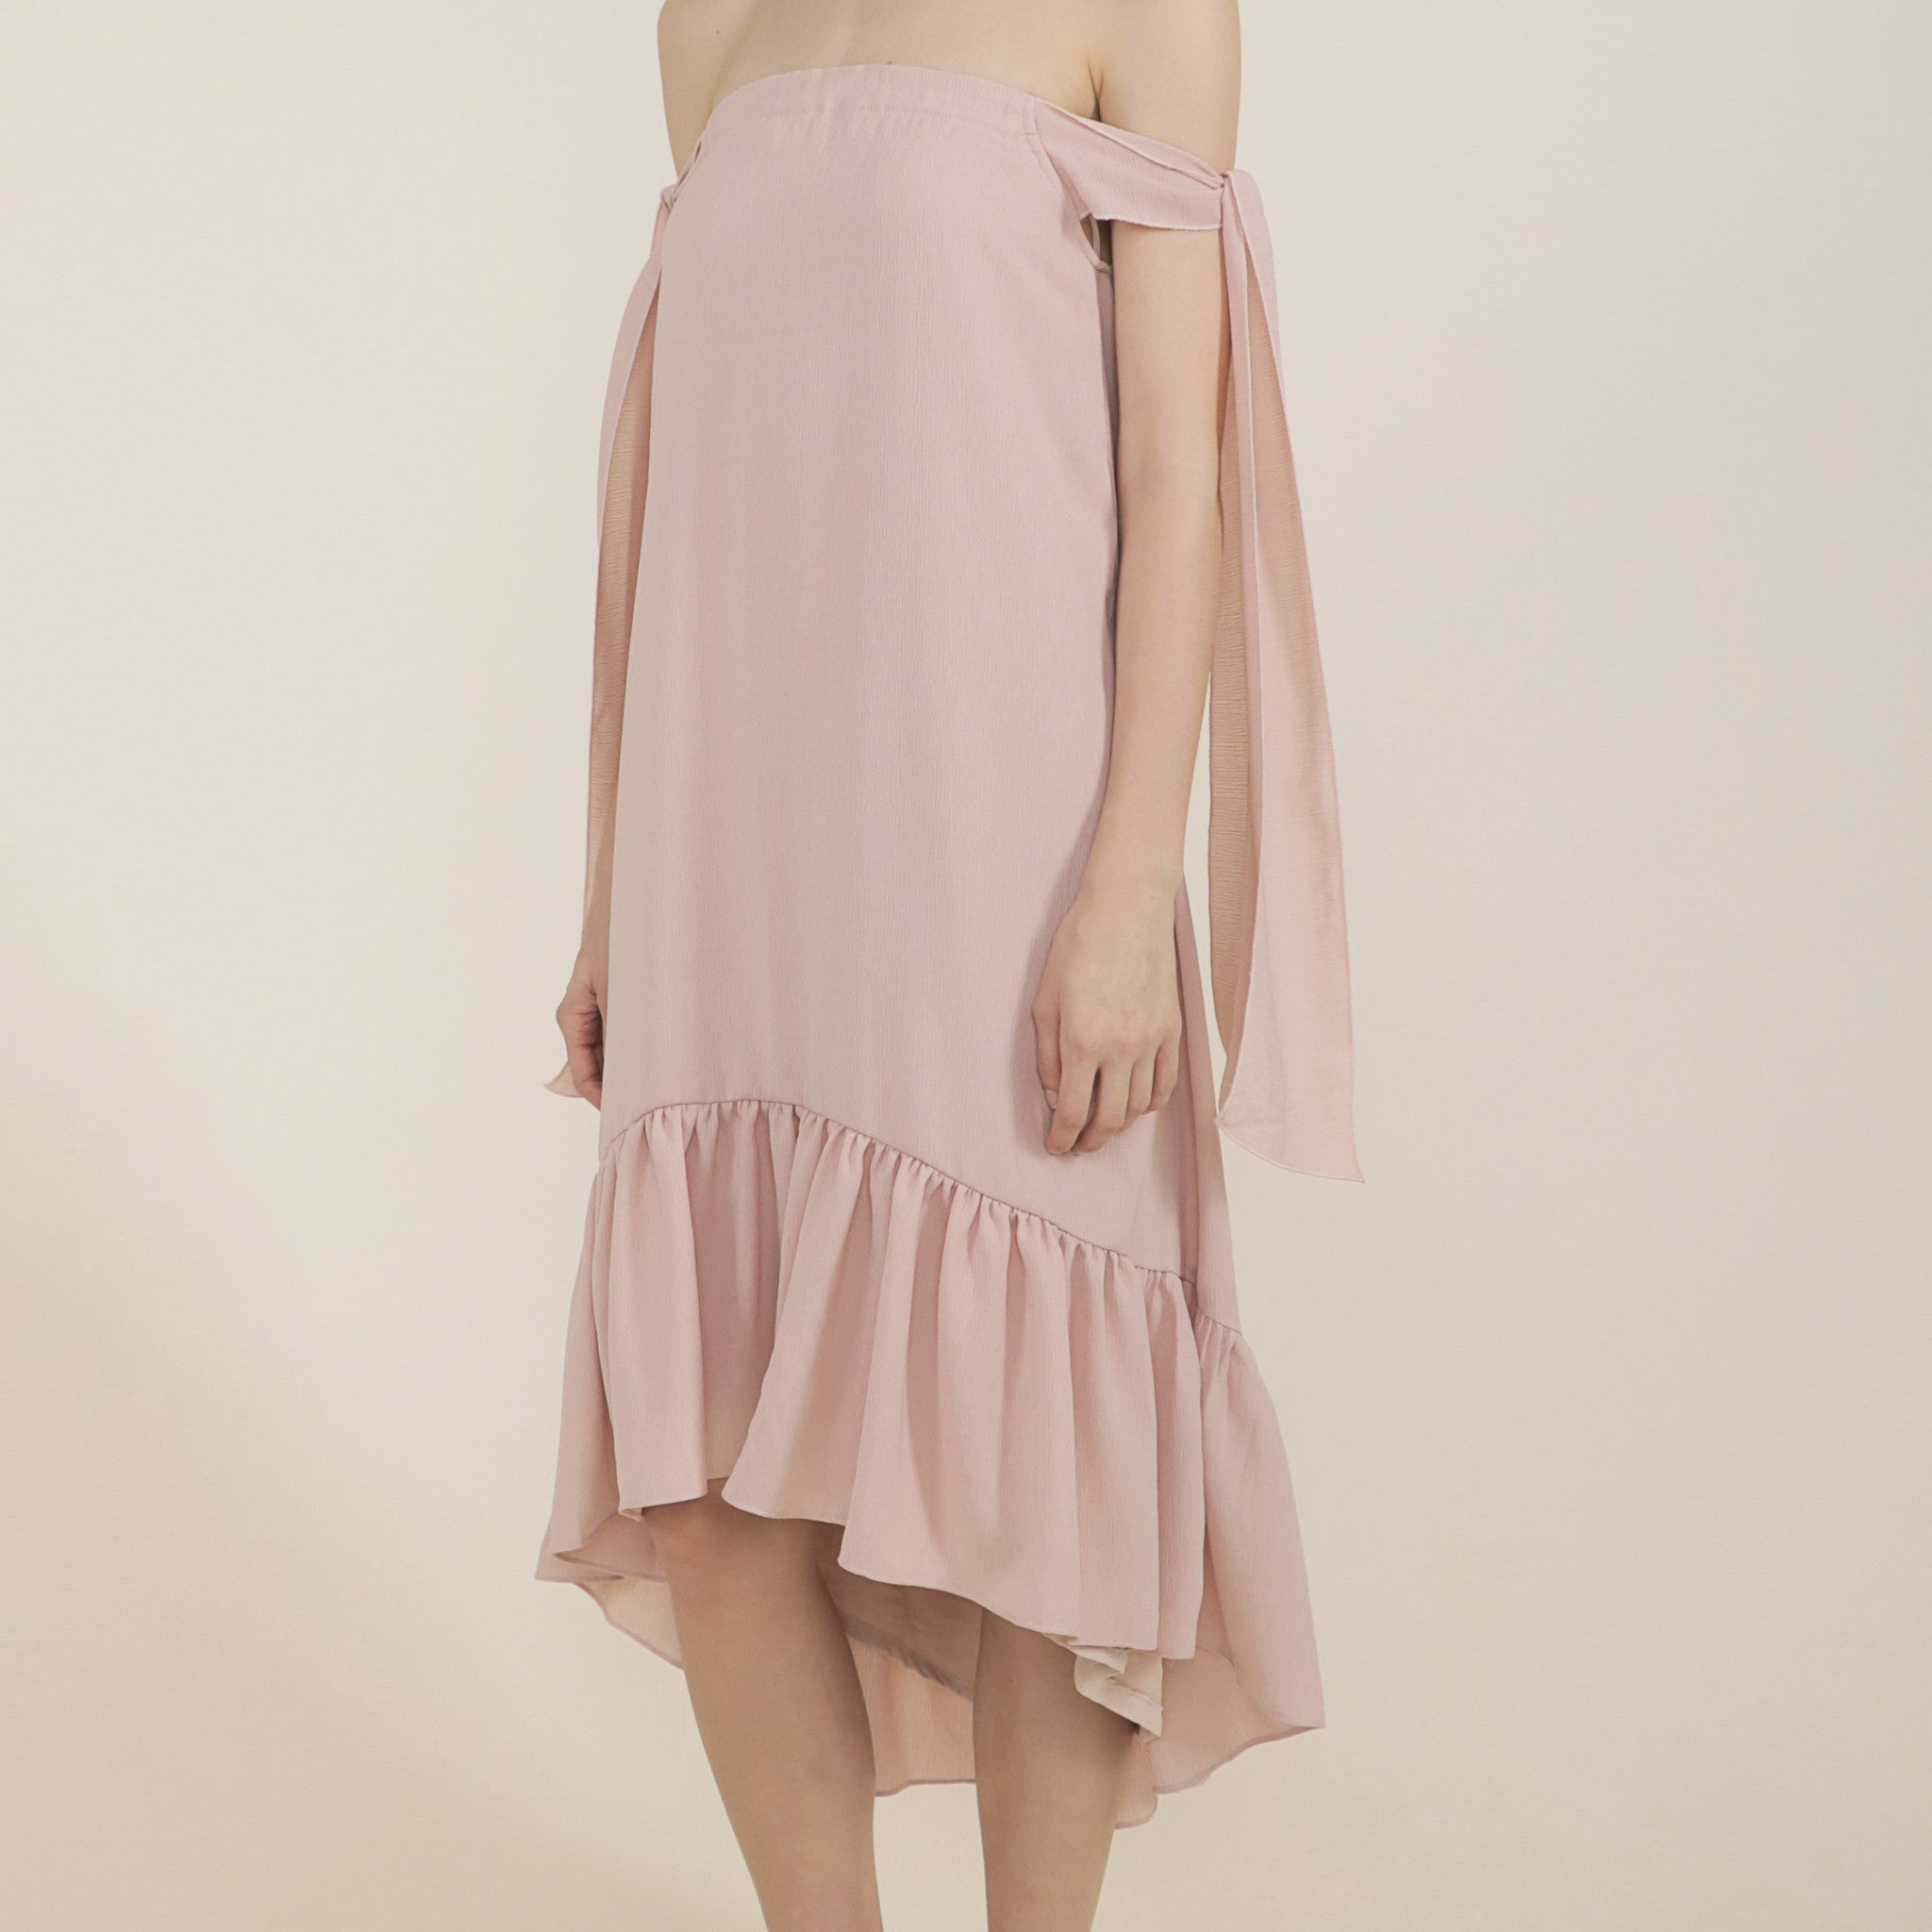 OFF-SHOULDER DRESS WITH TIE SASH <br> NUDE